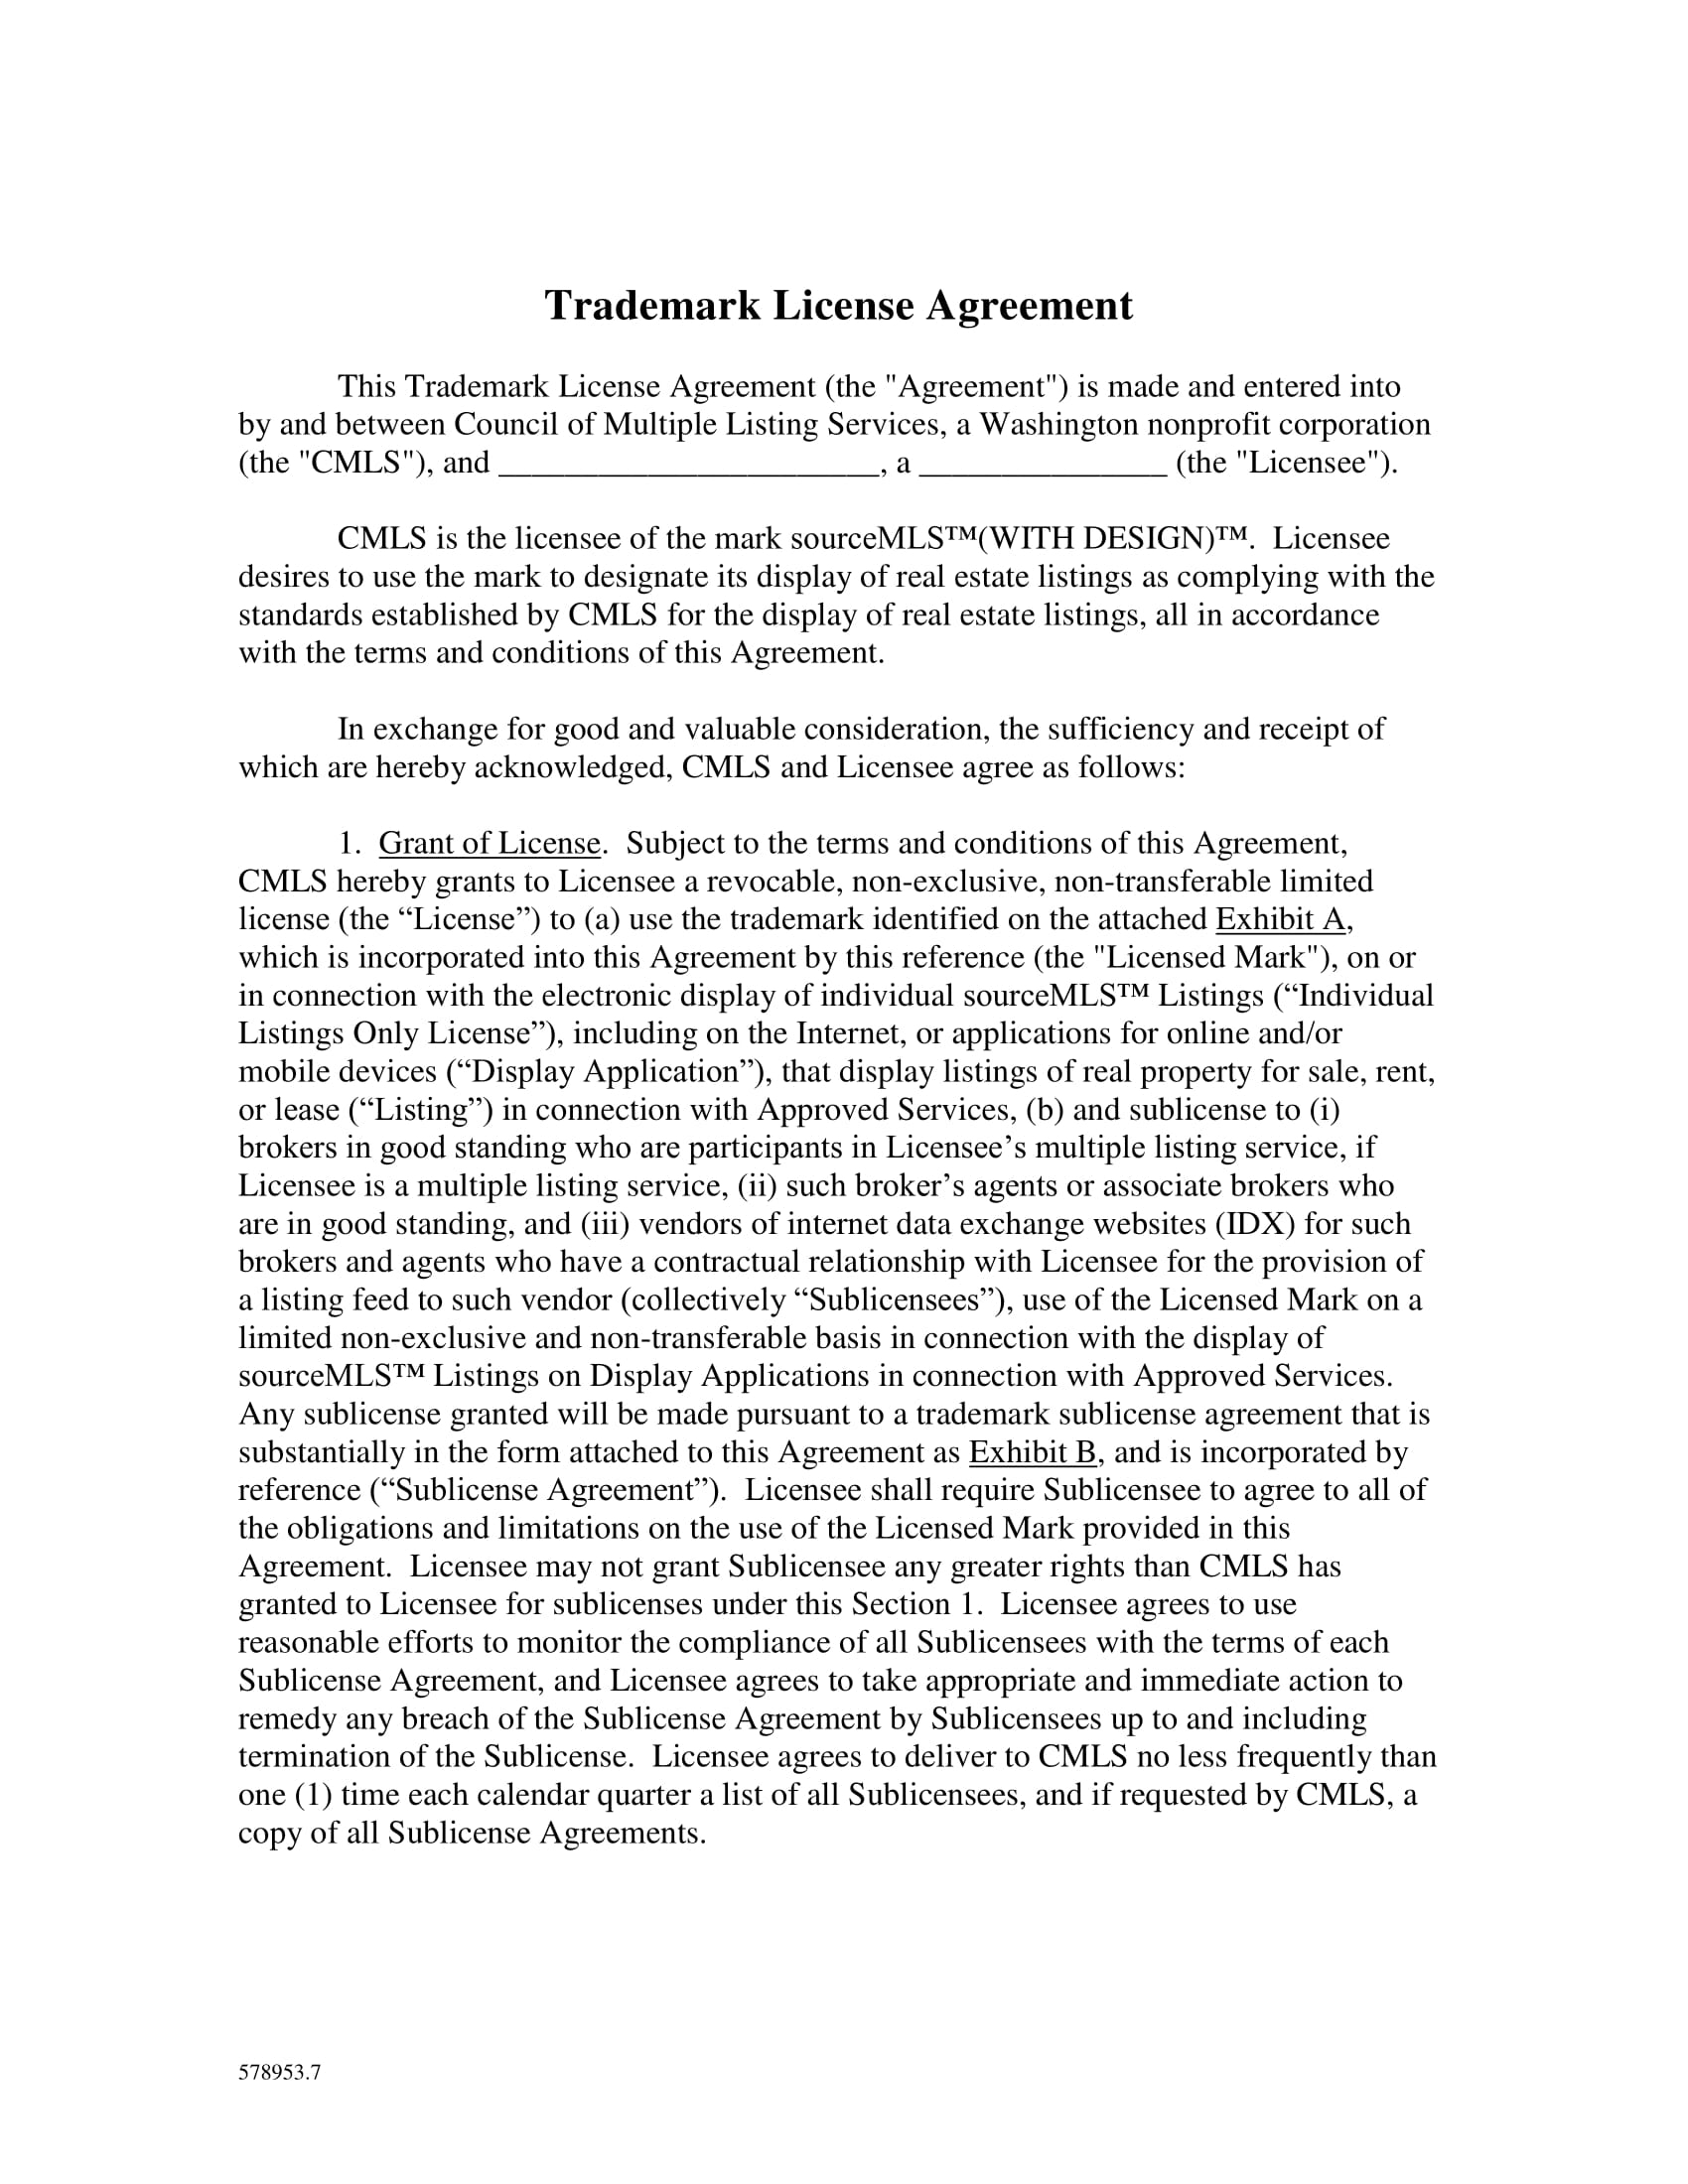 fillable trademark license agreement 01